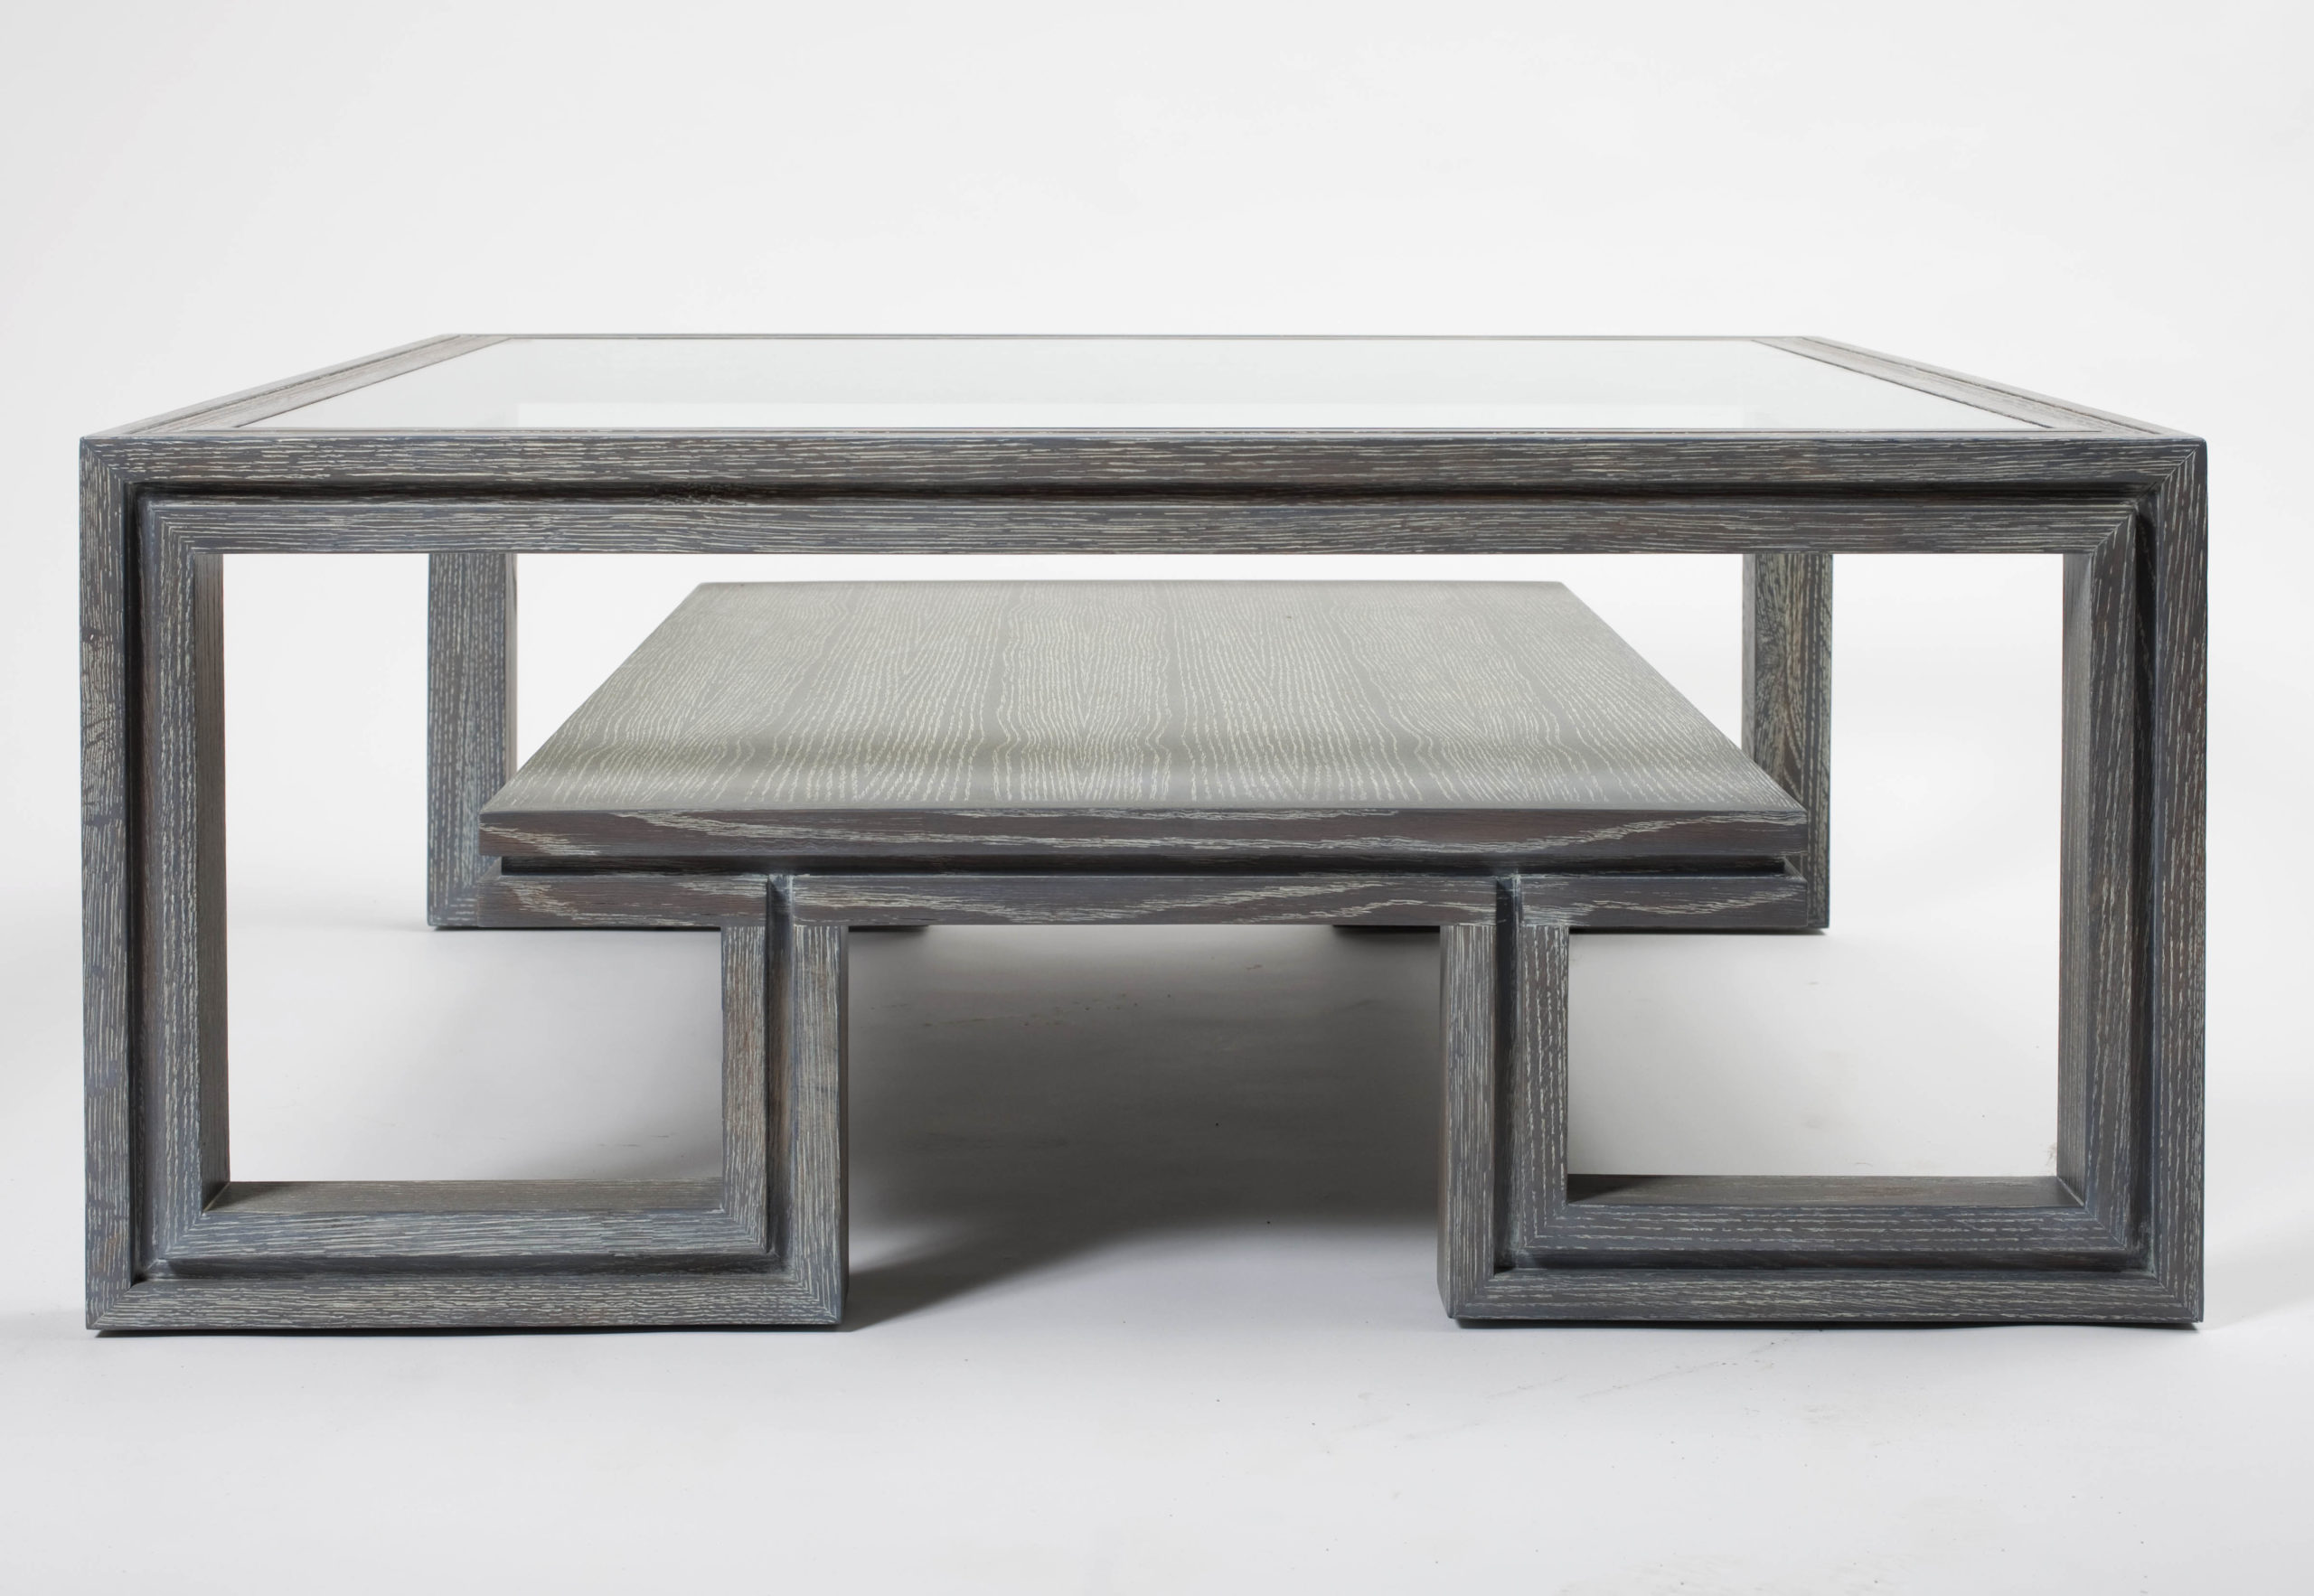 Profiles Image 12_duncan-coffee table-by-James Duncan-at-Profiles-New York